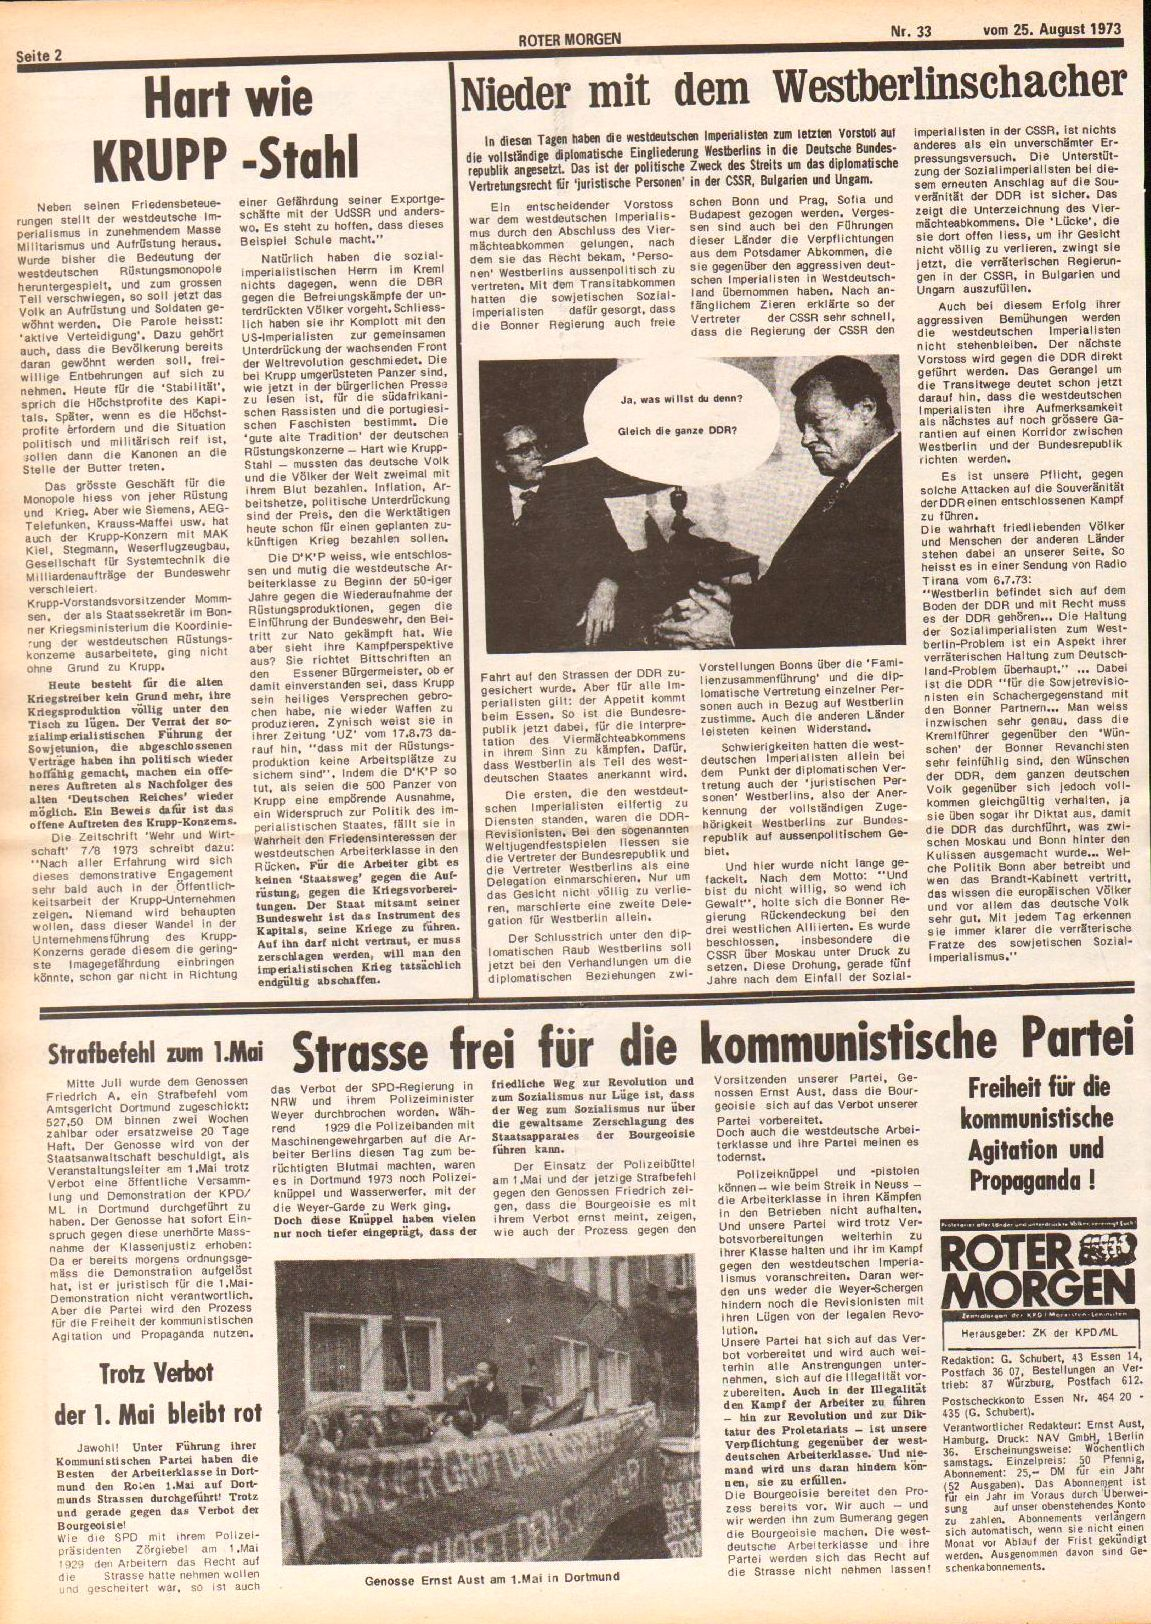 Roter Morgen, 7. Jg., 25. August 1973, Nr. 33, Seite 2